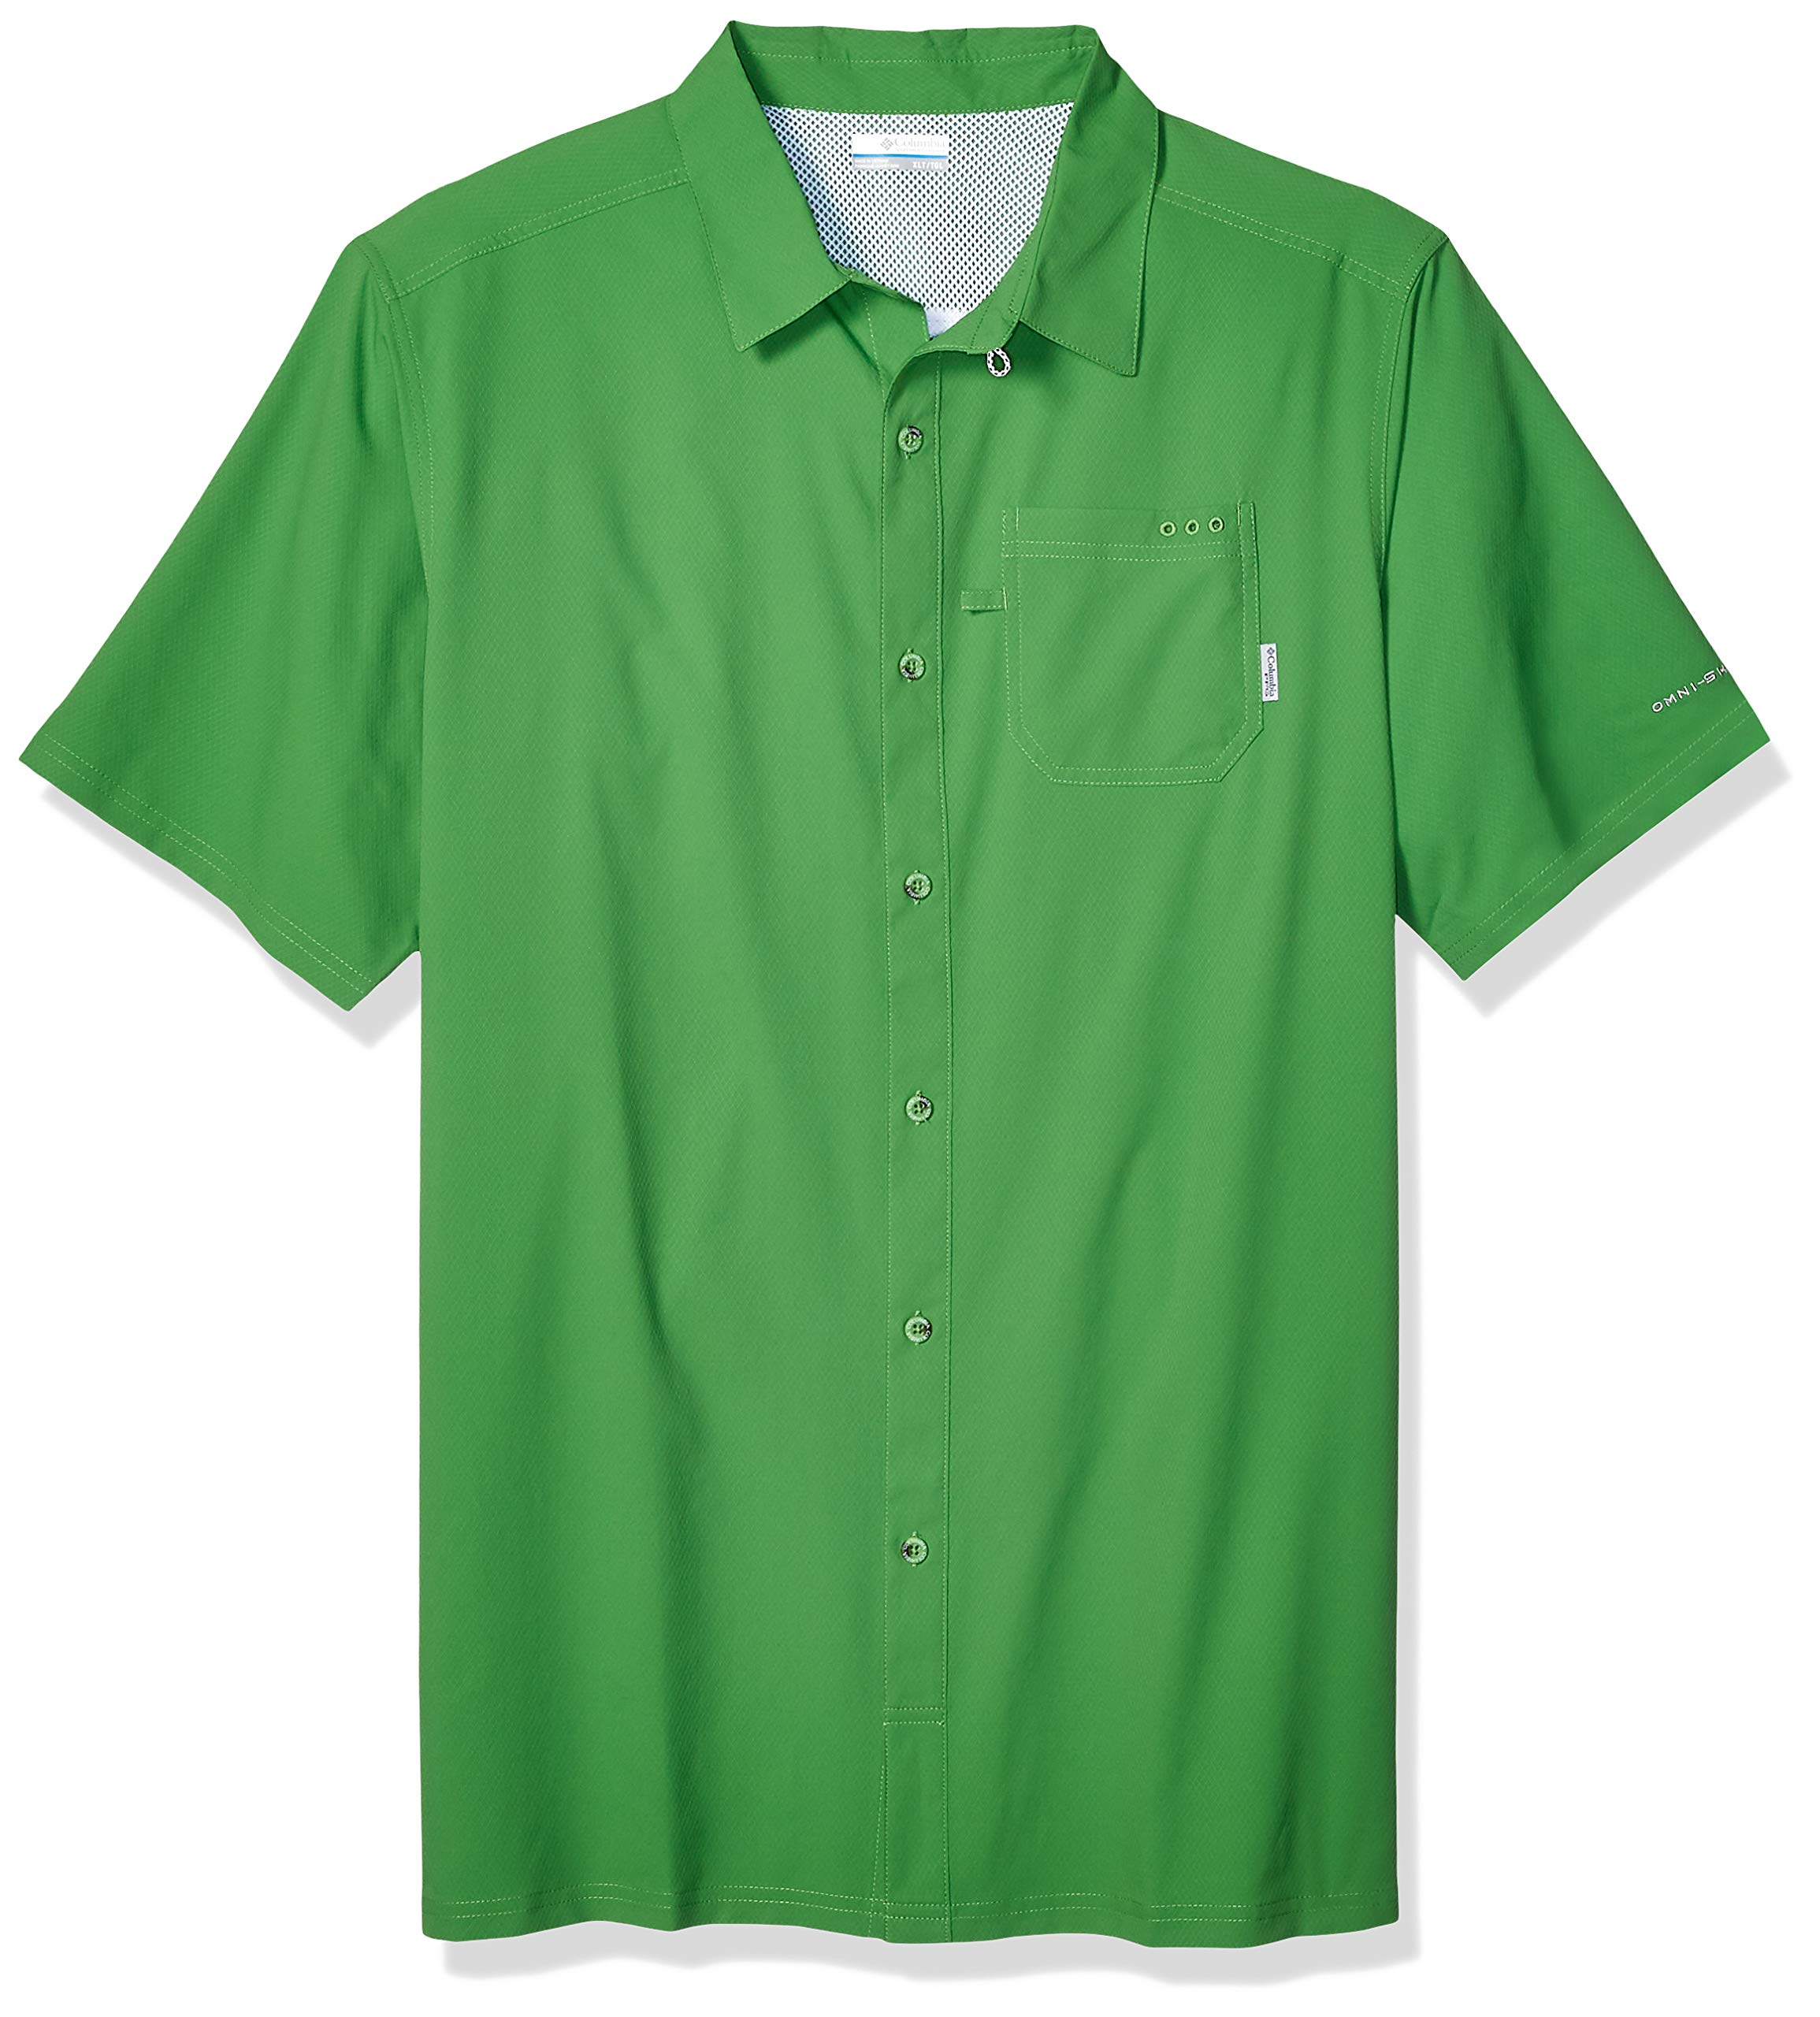 Columbia Standard Men's Slack Tide Camp Shirt, Moisture Wicking, Clean Green, X-Large by Columbia